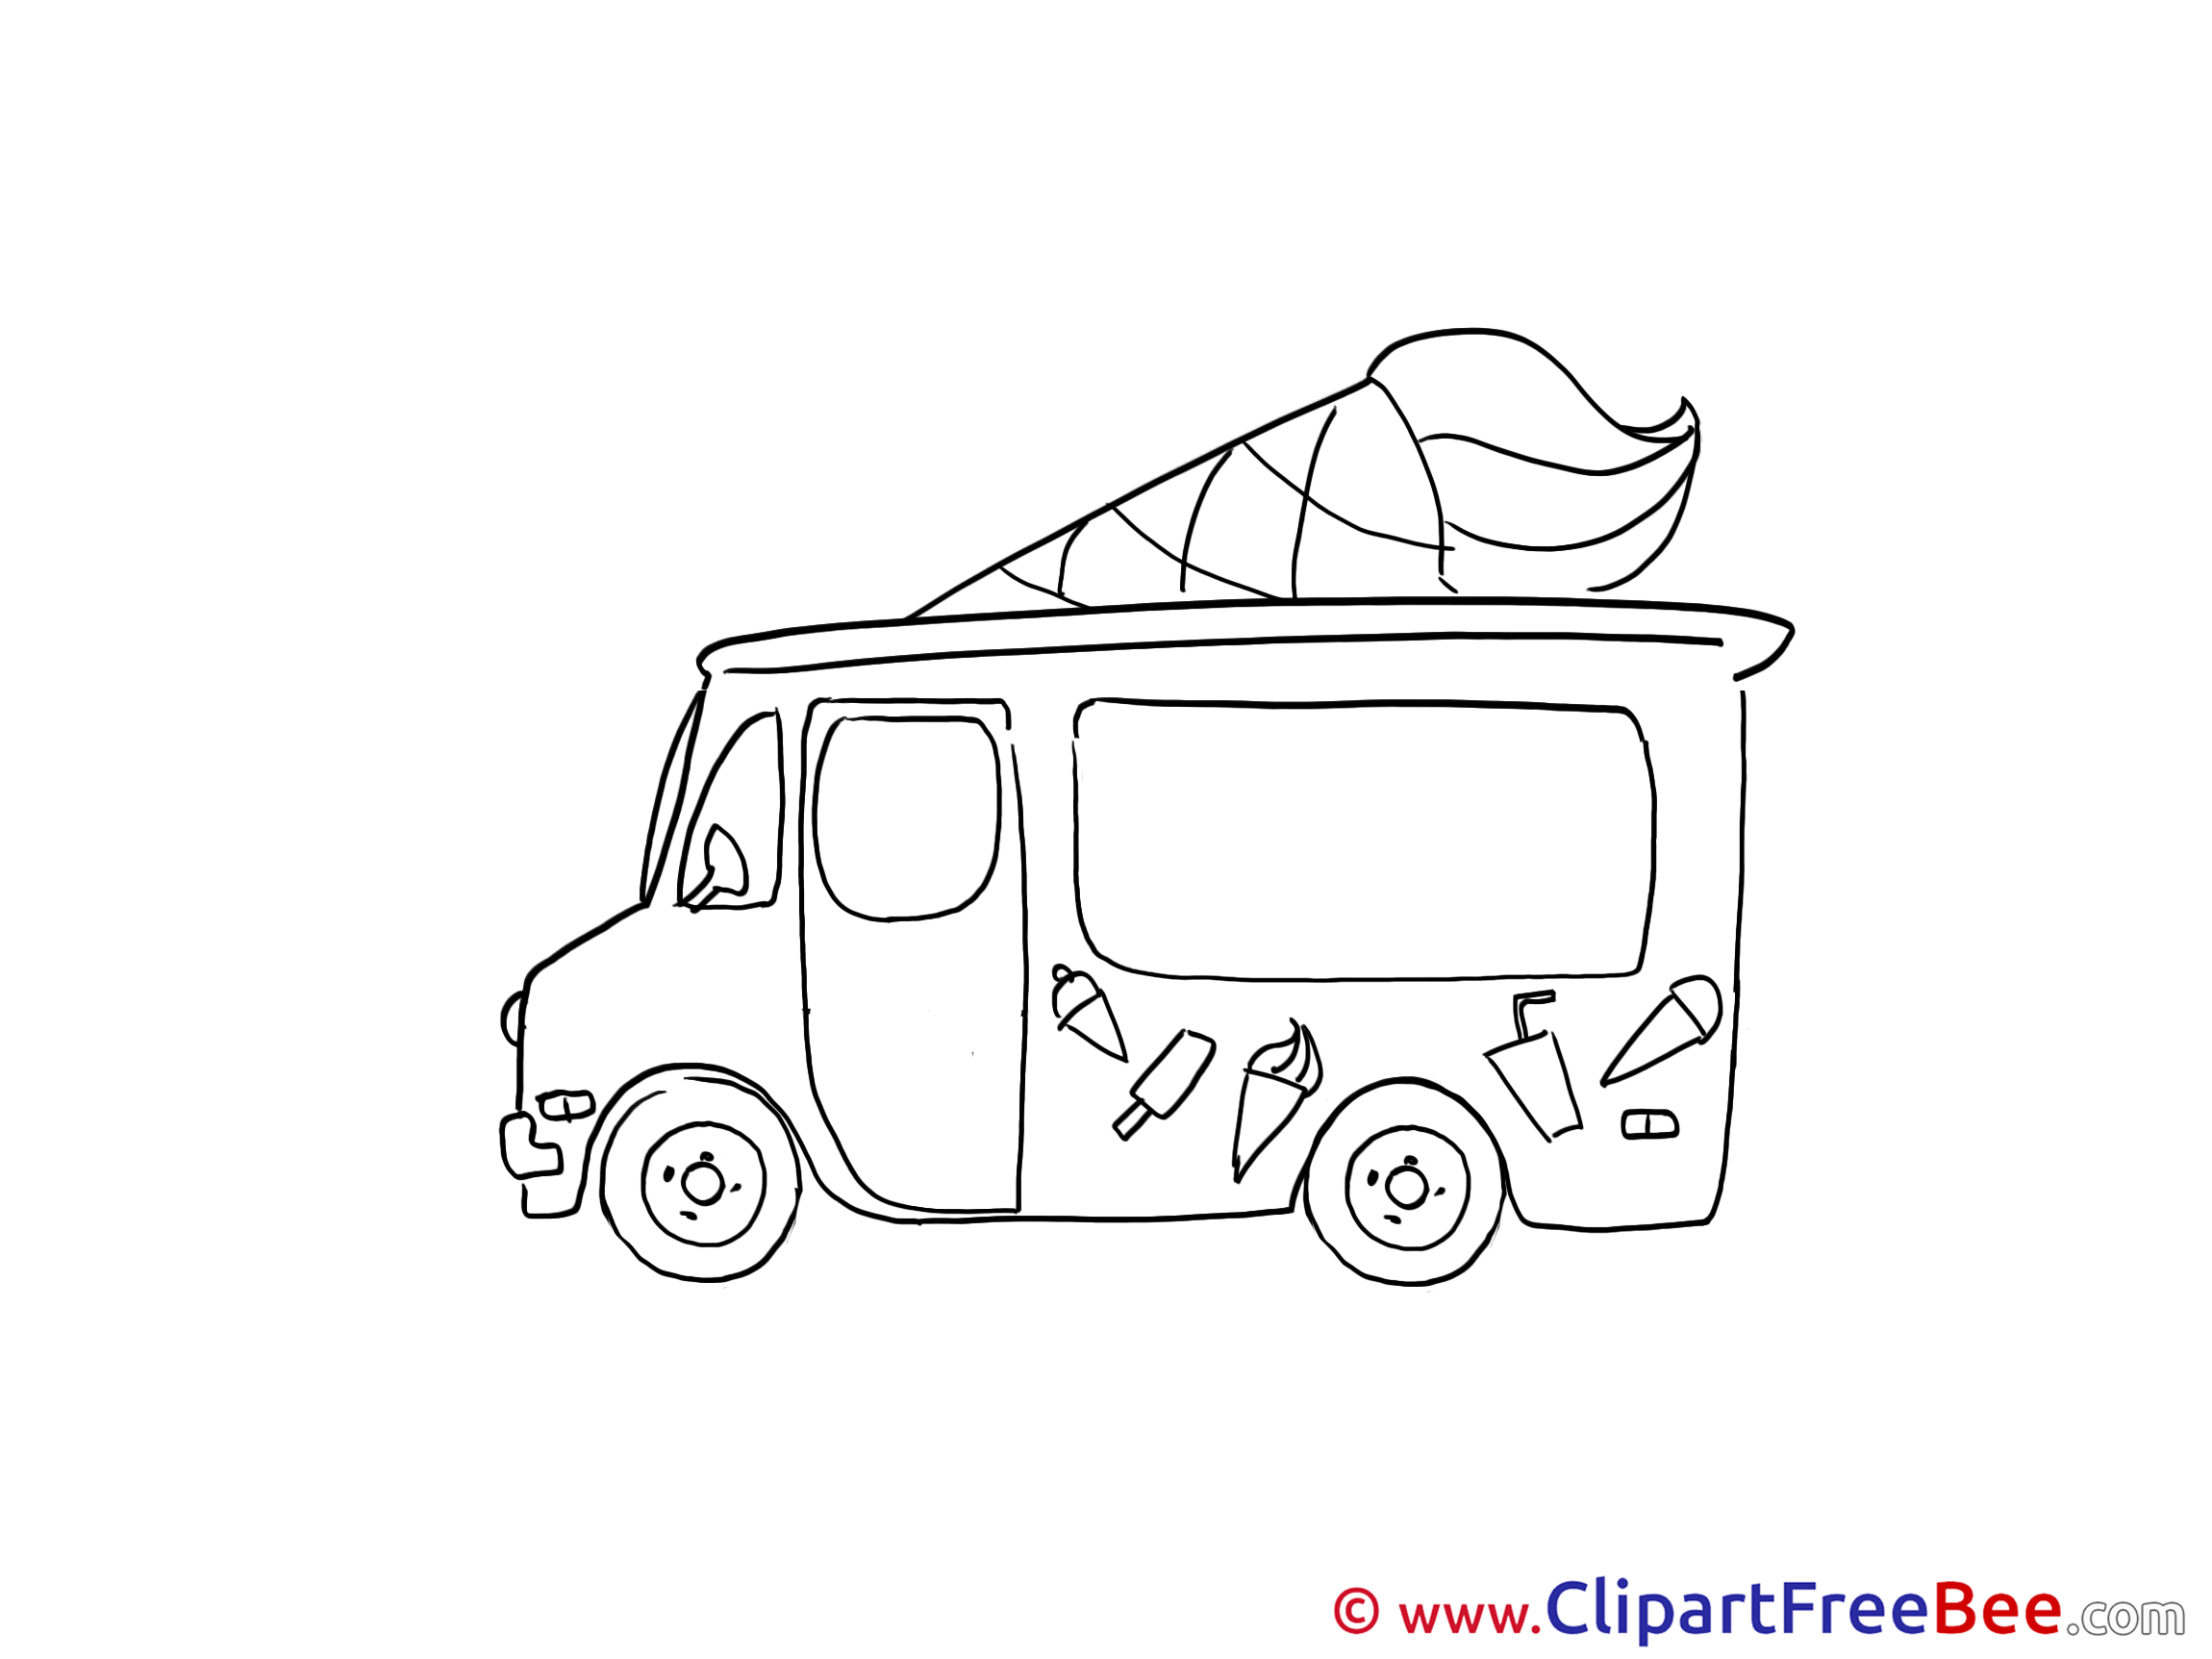 Drawing Ice Cream Truck Clipart free Illustrations.